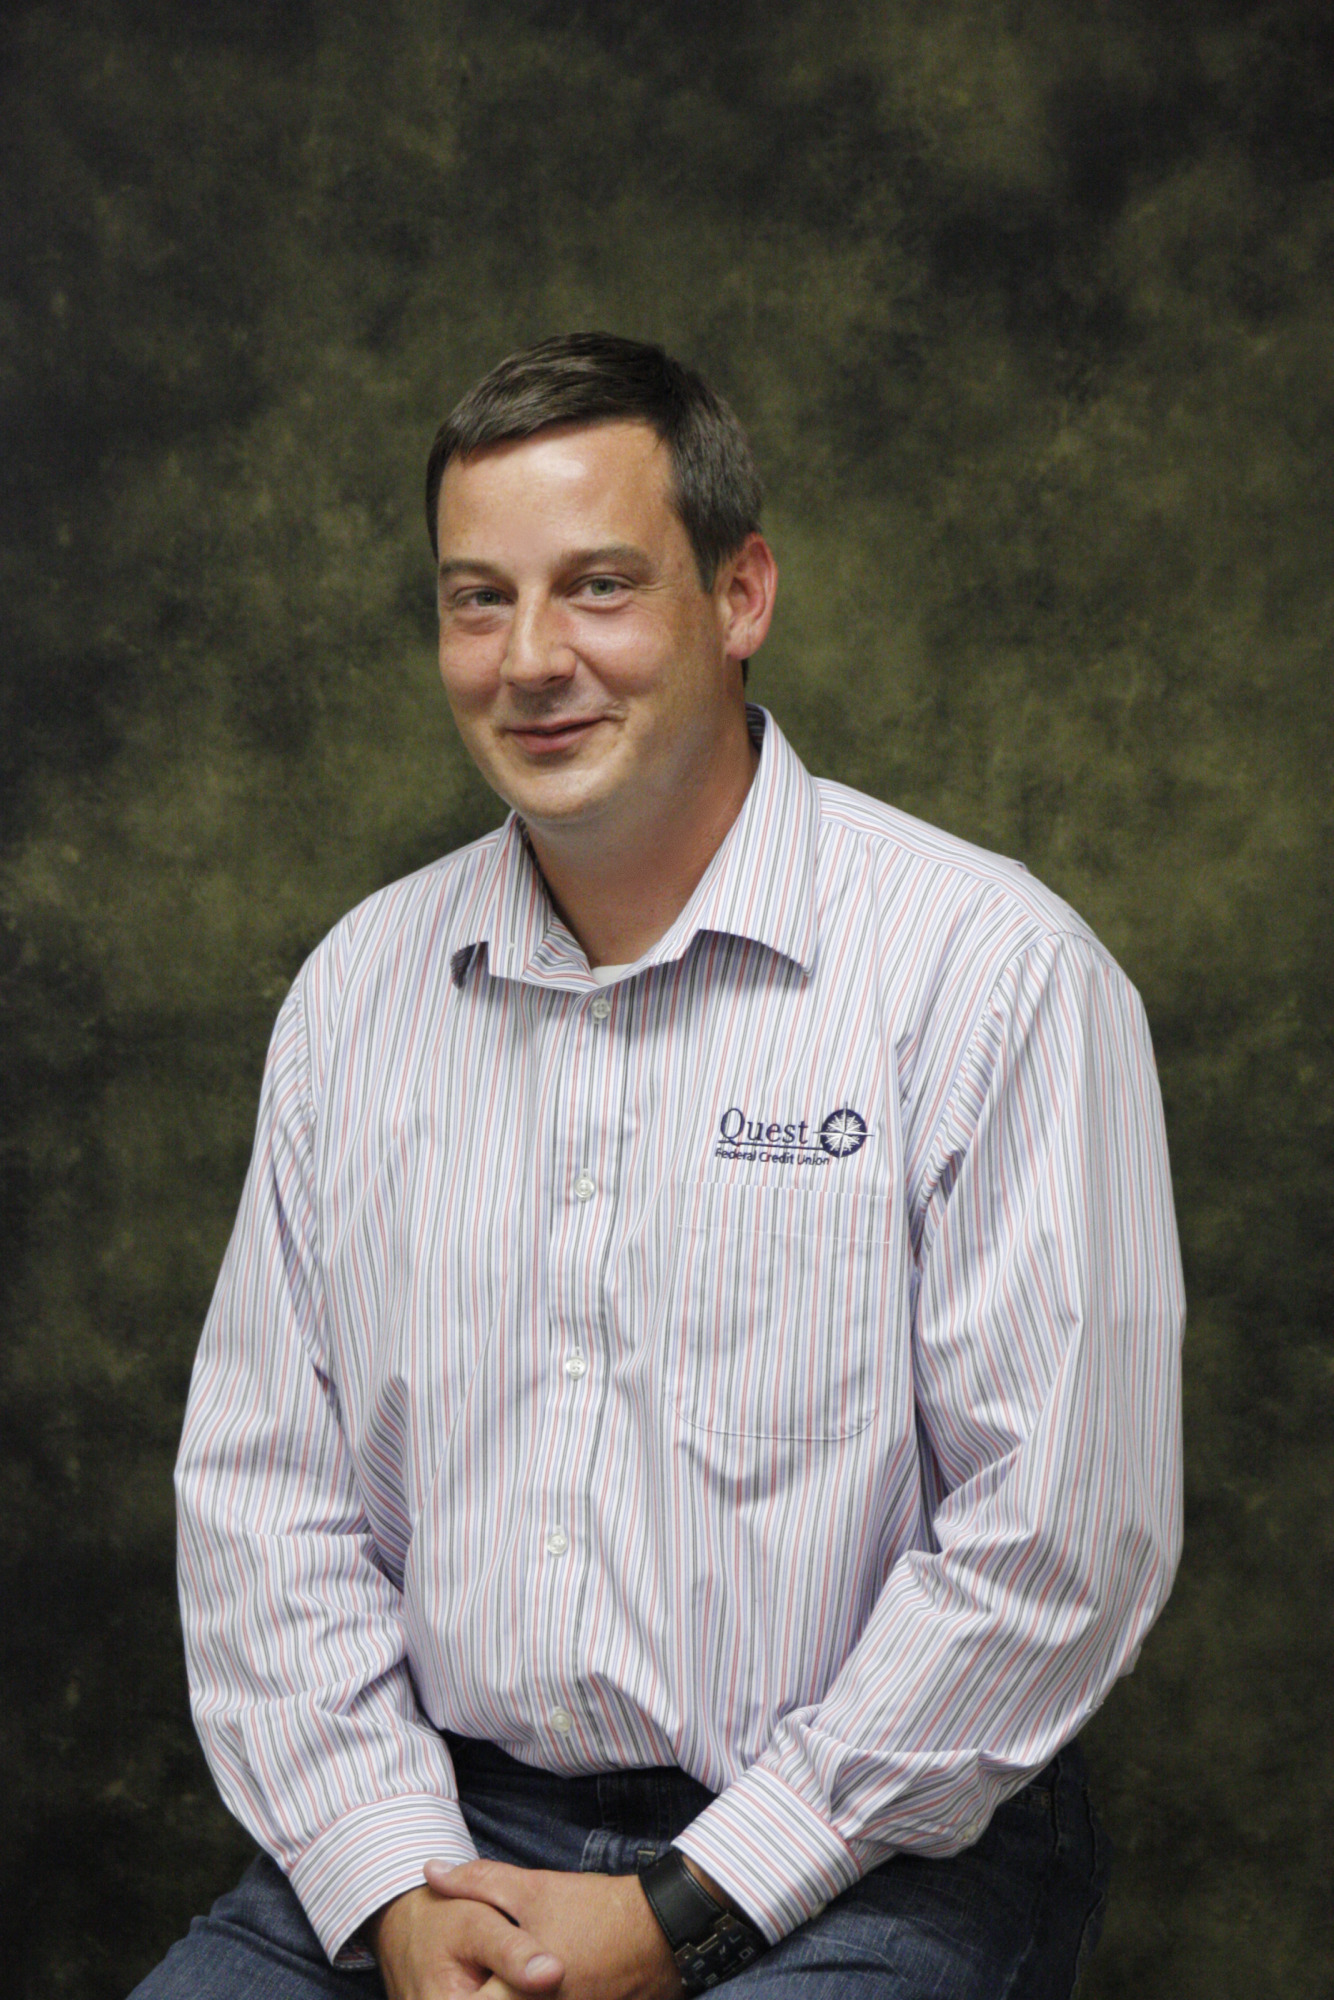 Quest FCU CEO, Matt Jennings